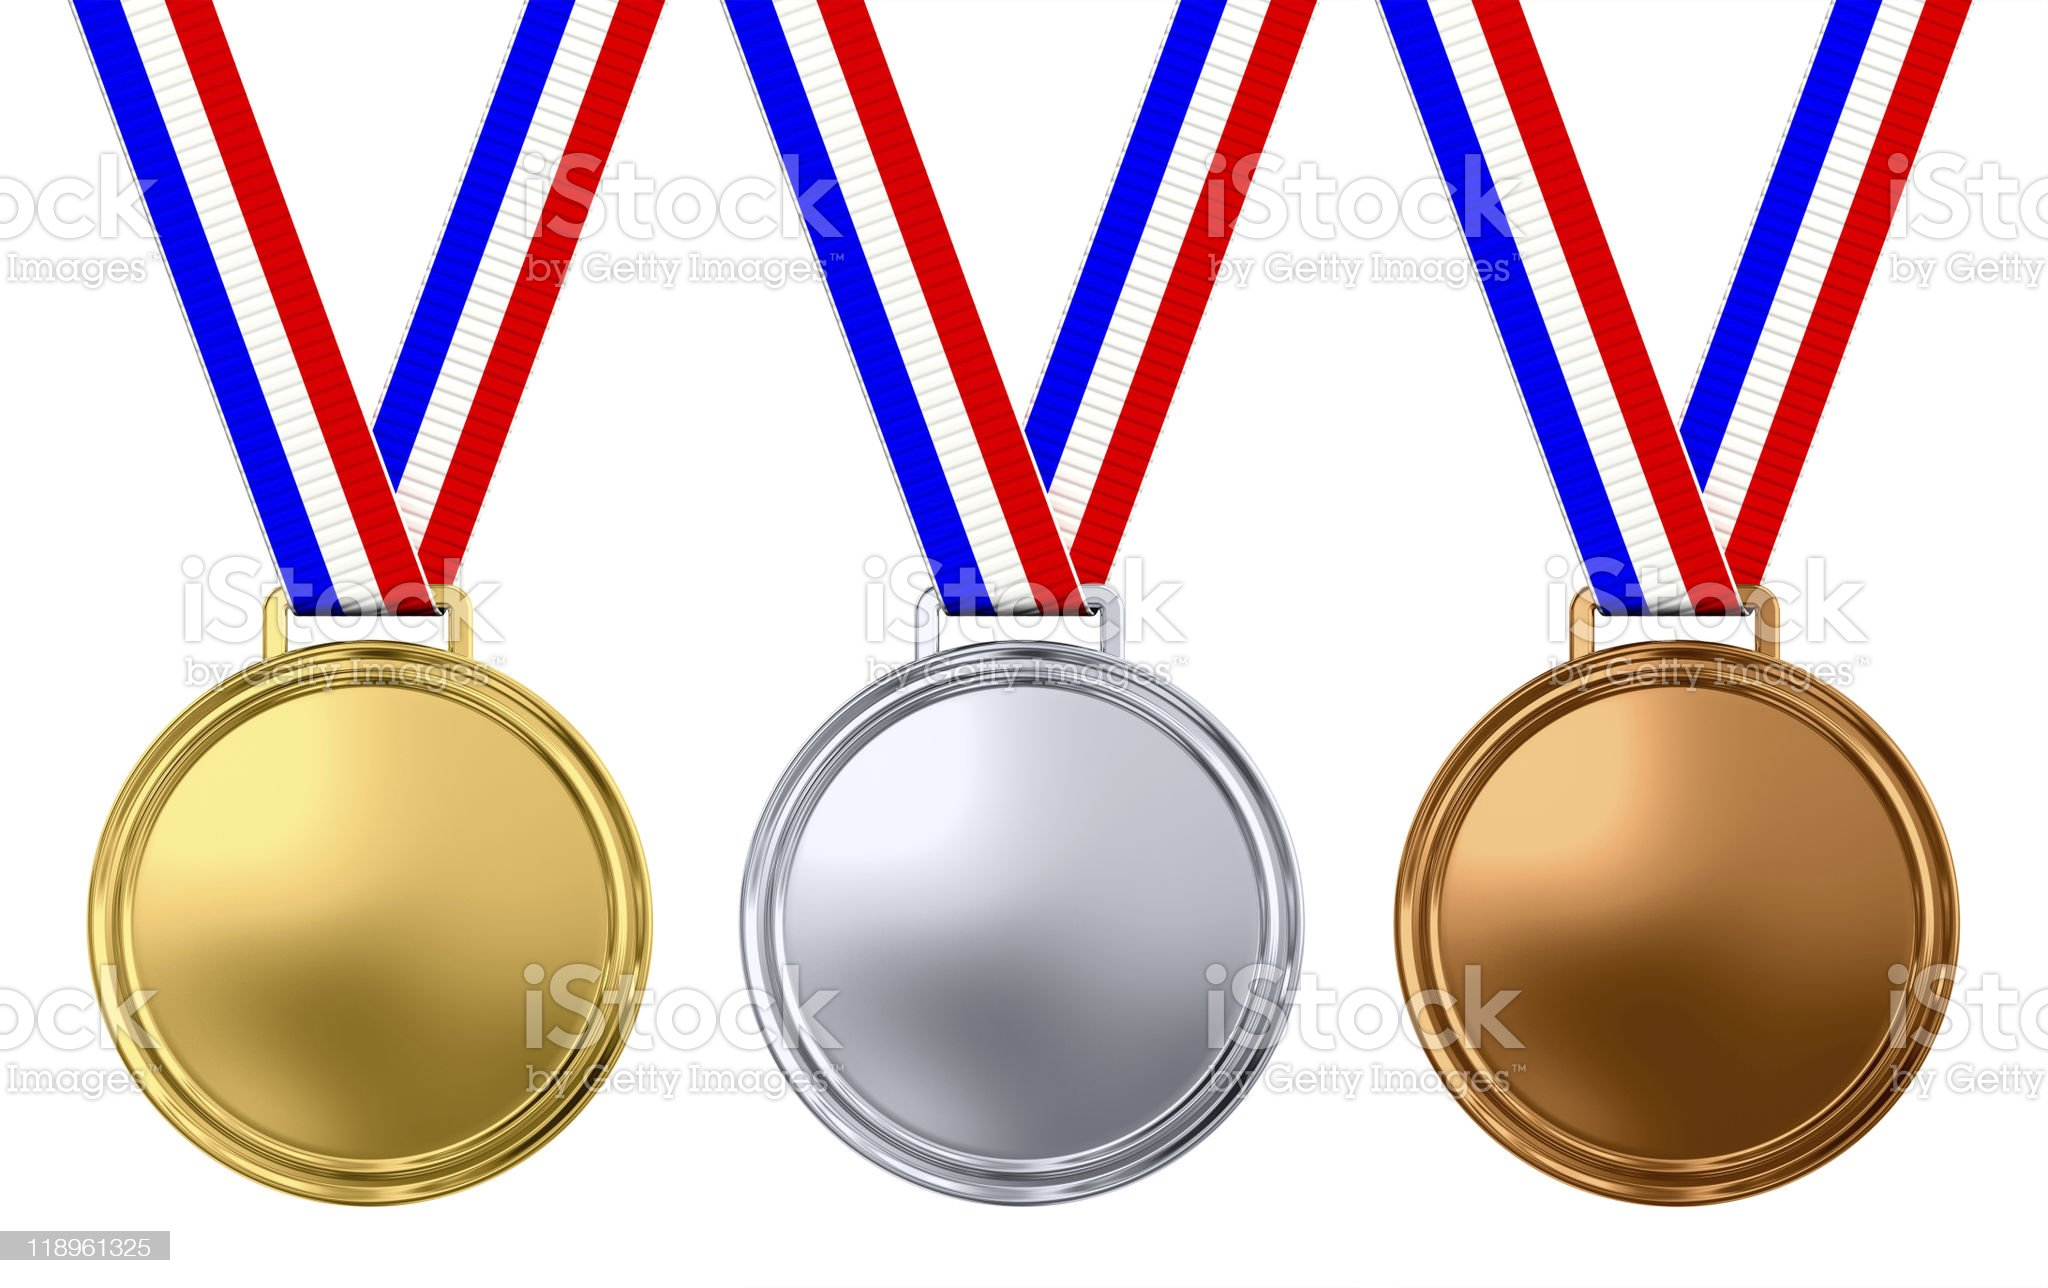 Three blank medals royalty-free stock photo